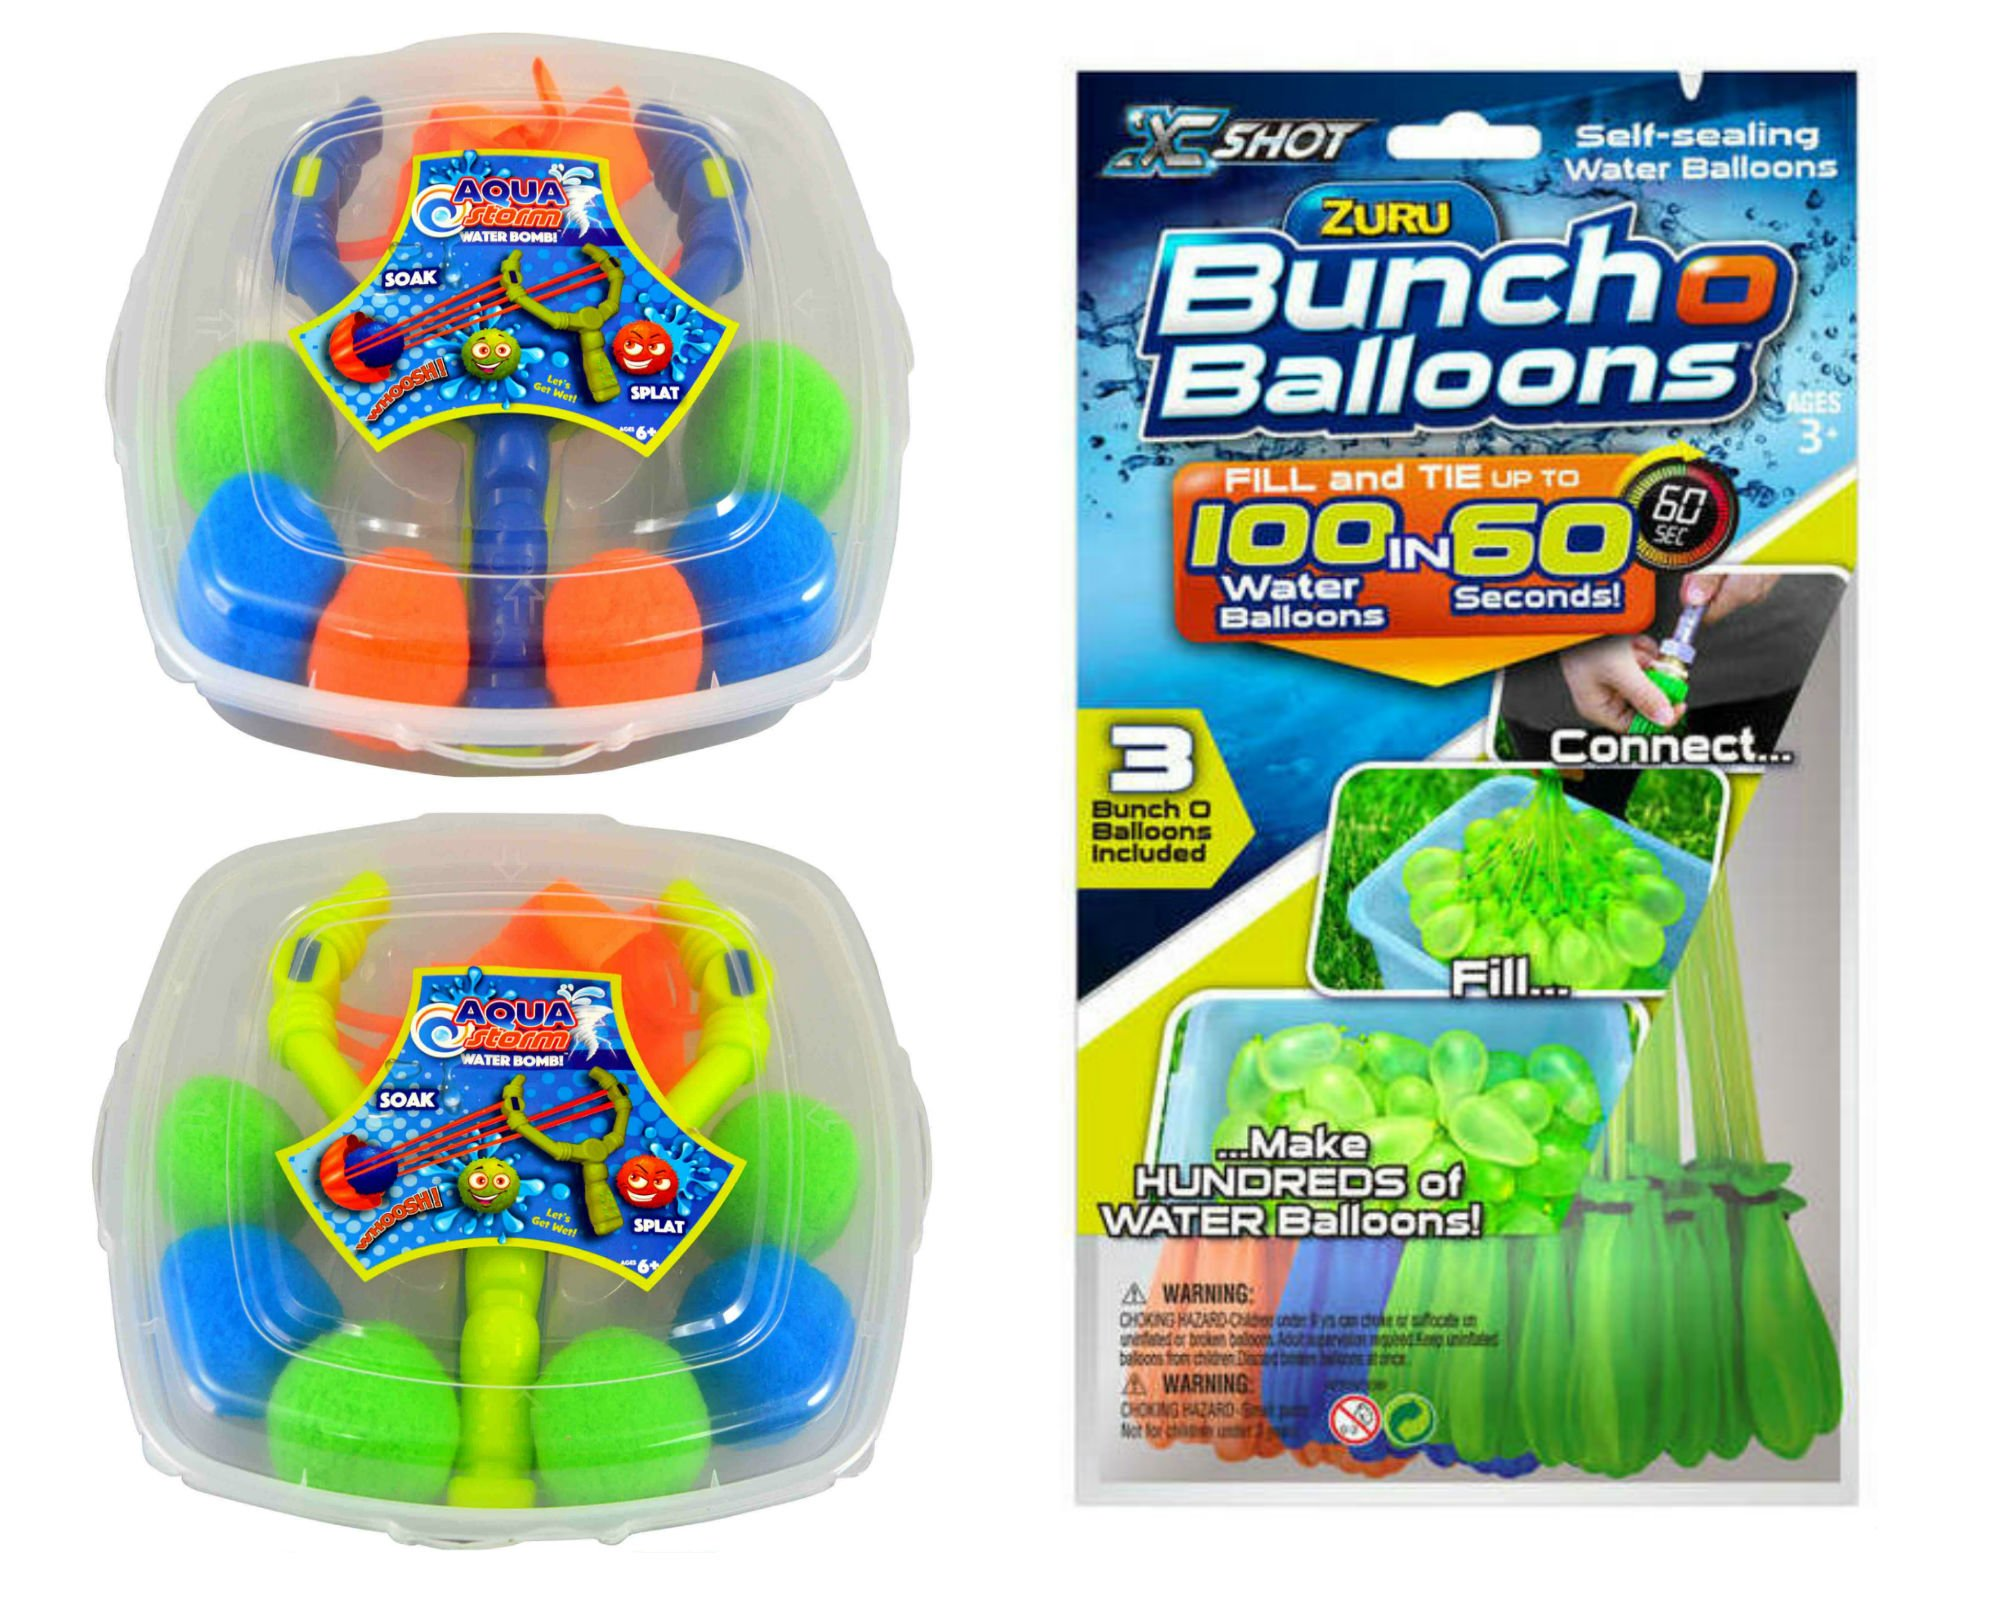 Water Balloons Bunch O Balloons Self Sealing with Water Balloon Slingshot Launcher Complete Gift Set Water Toys Bundle - 105 Total Zuru Quick Fill Water Balloons (Assorted Colors)